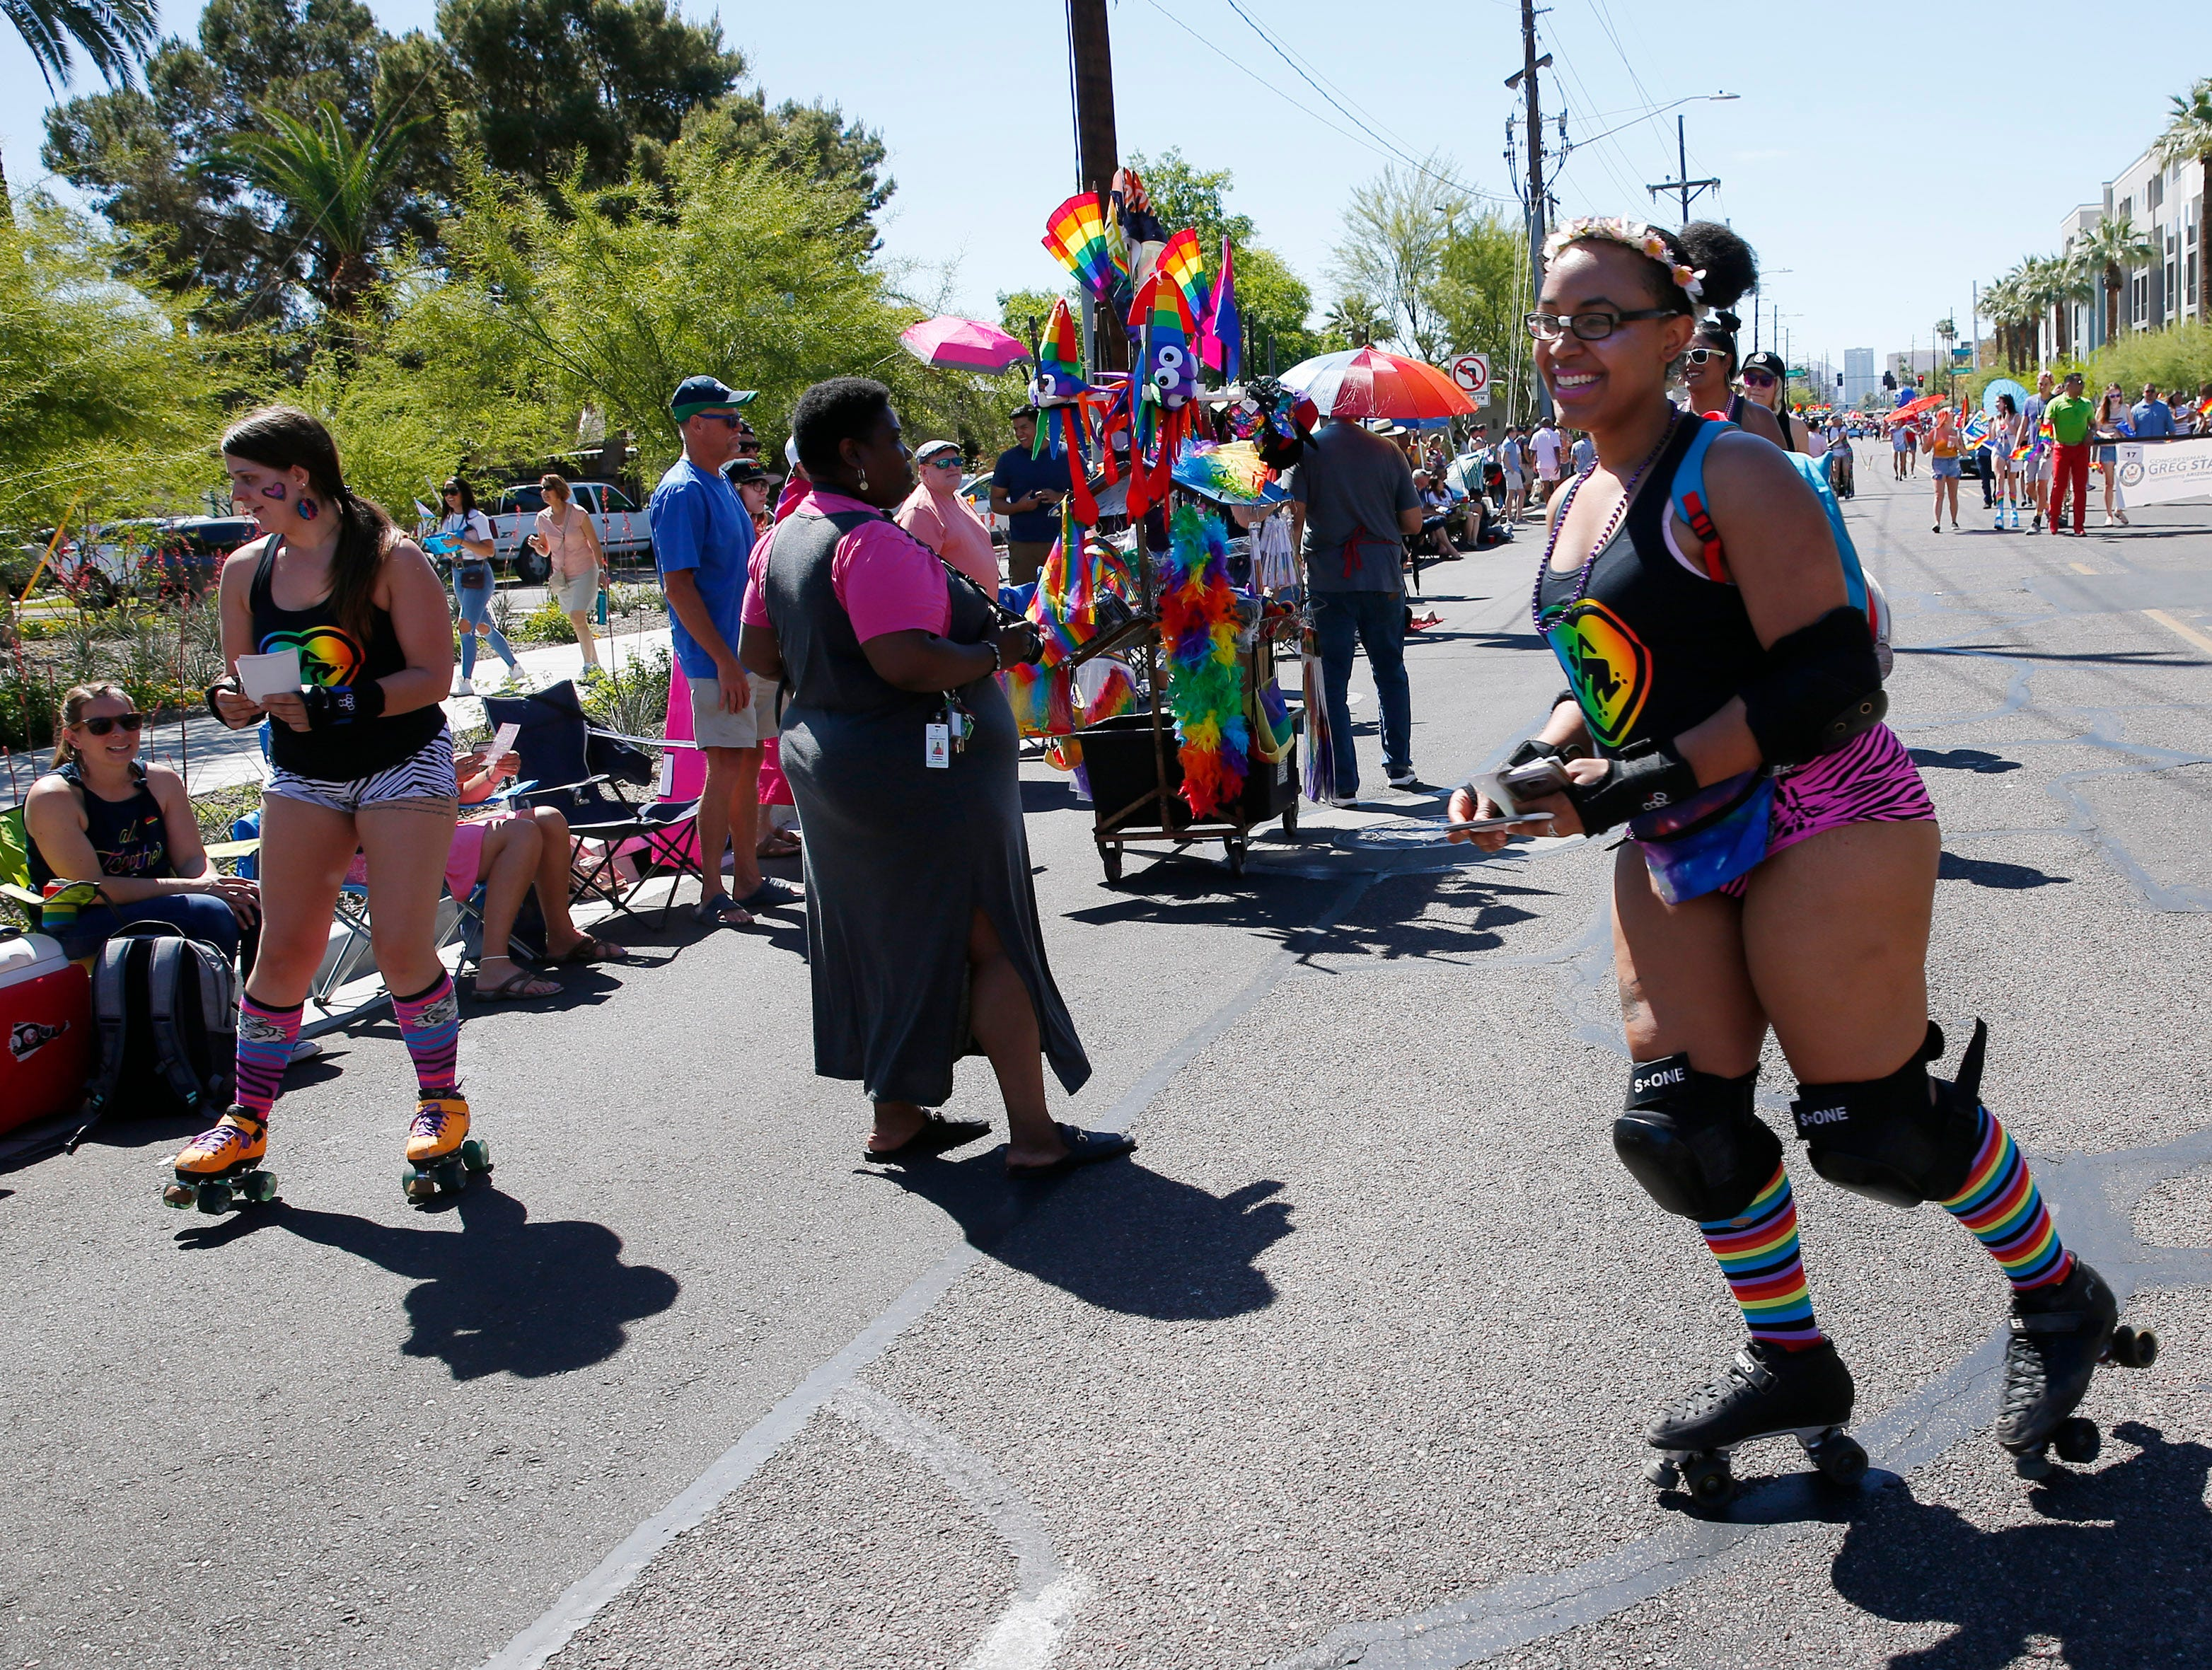 Members of Arizona Roller Derby participates in the Phoenix Pride Parade on April 7, 2019.